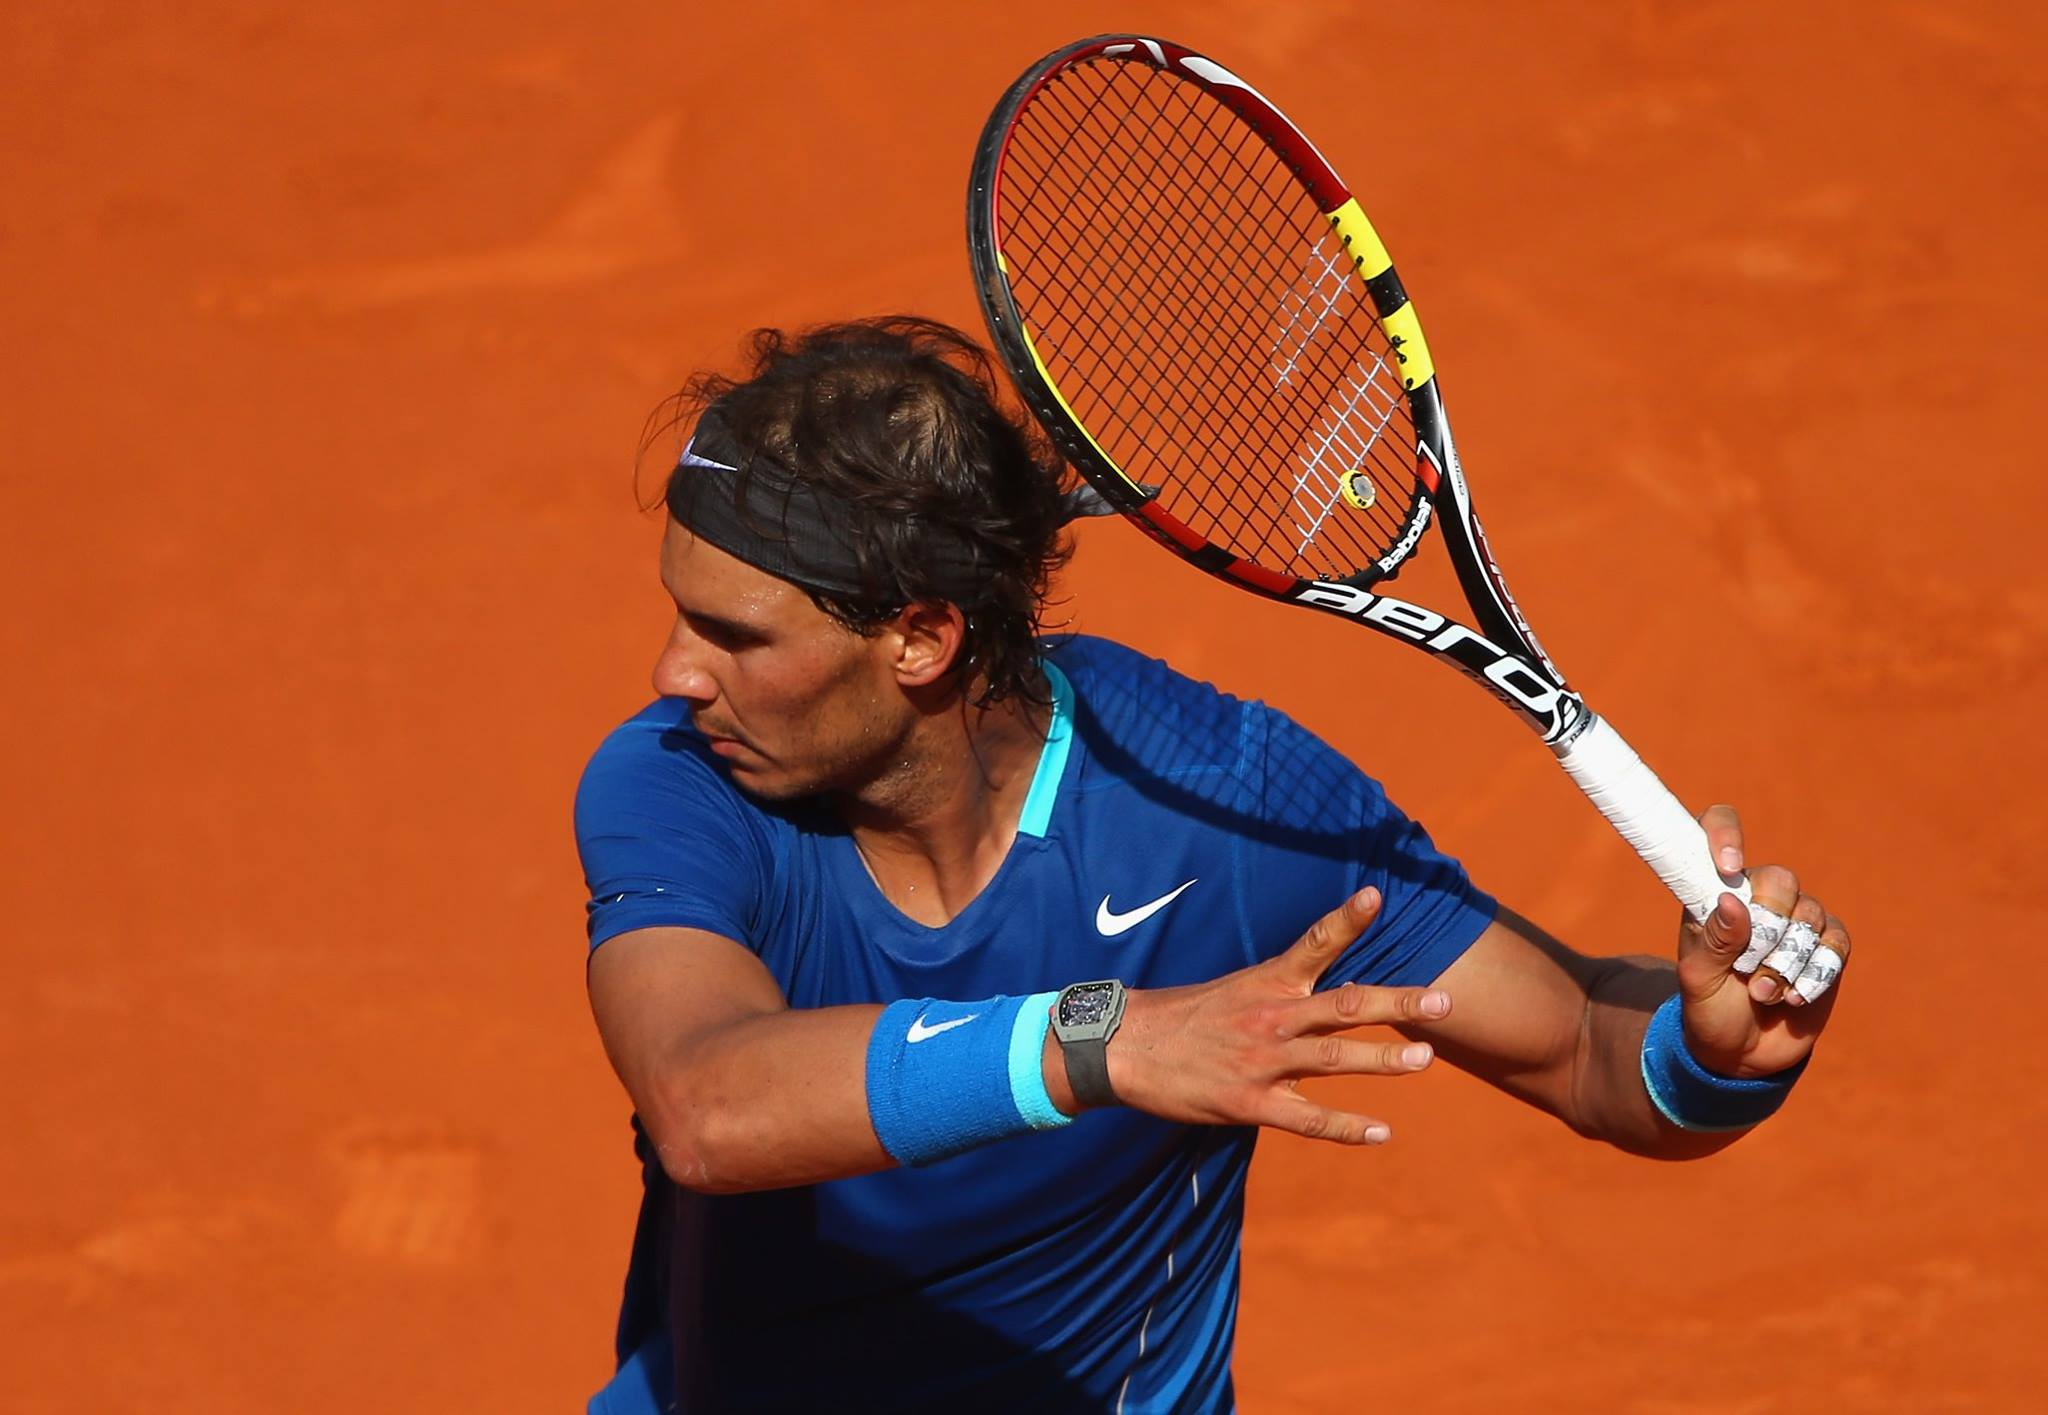 rafael nadal RM27-01, RM27-01, French Open Mille, Roland Garros RM27